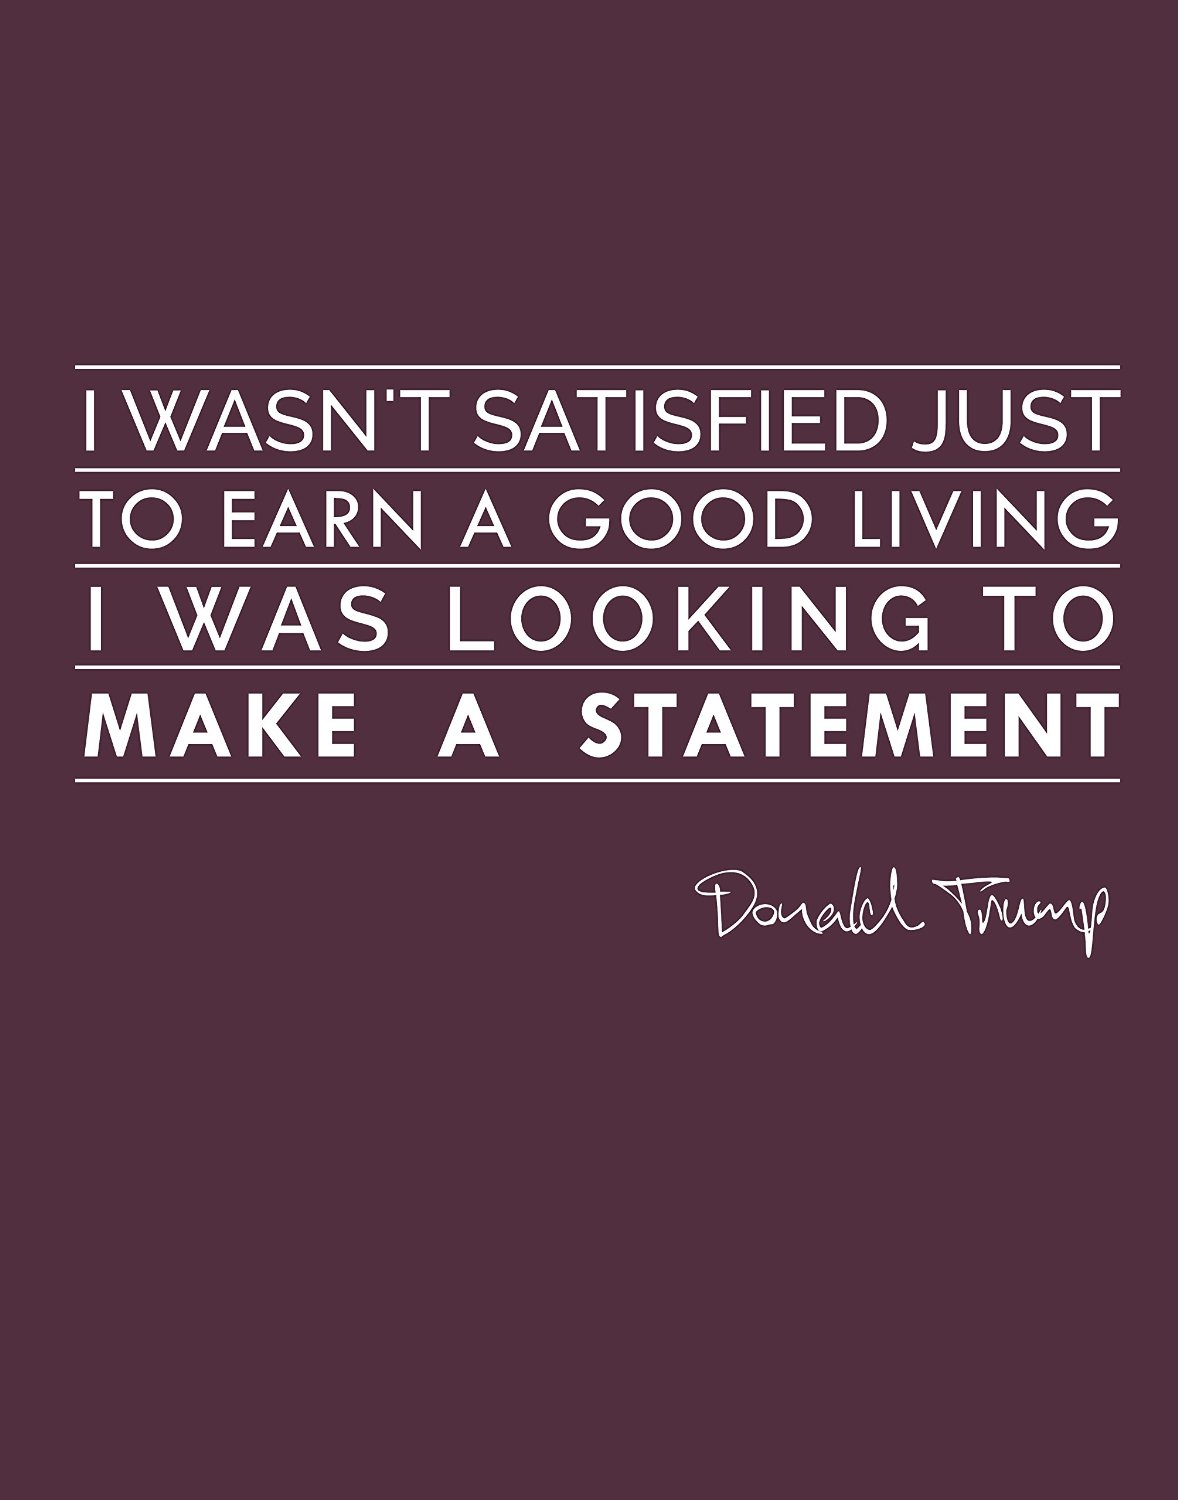 Make A Statement Donald Trump Daily Quotes Sayings Pictures